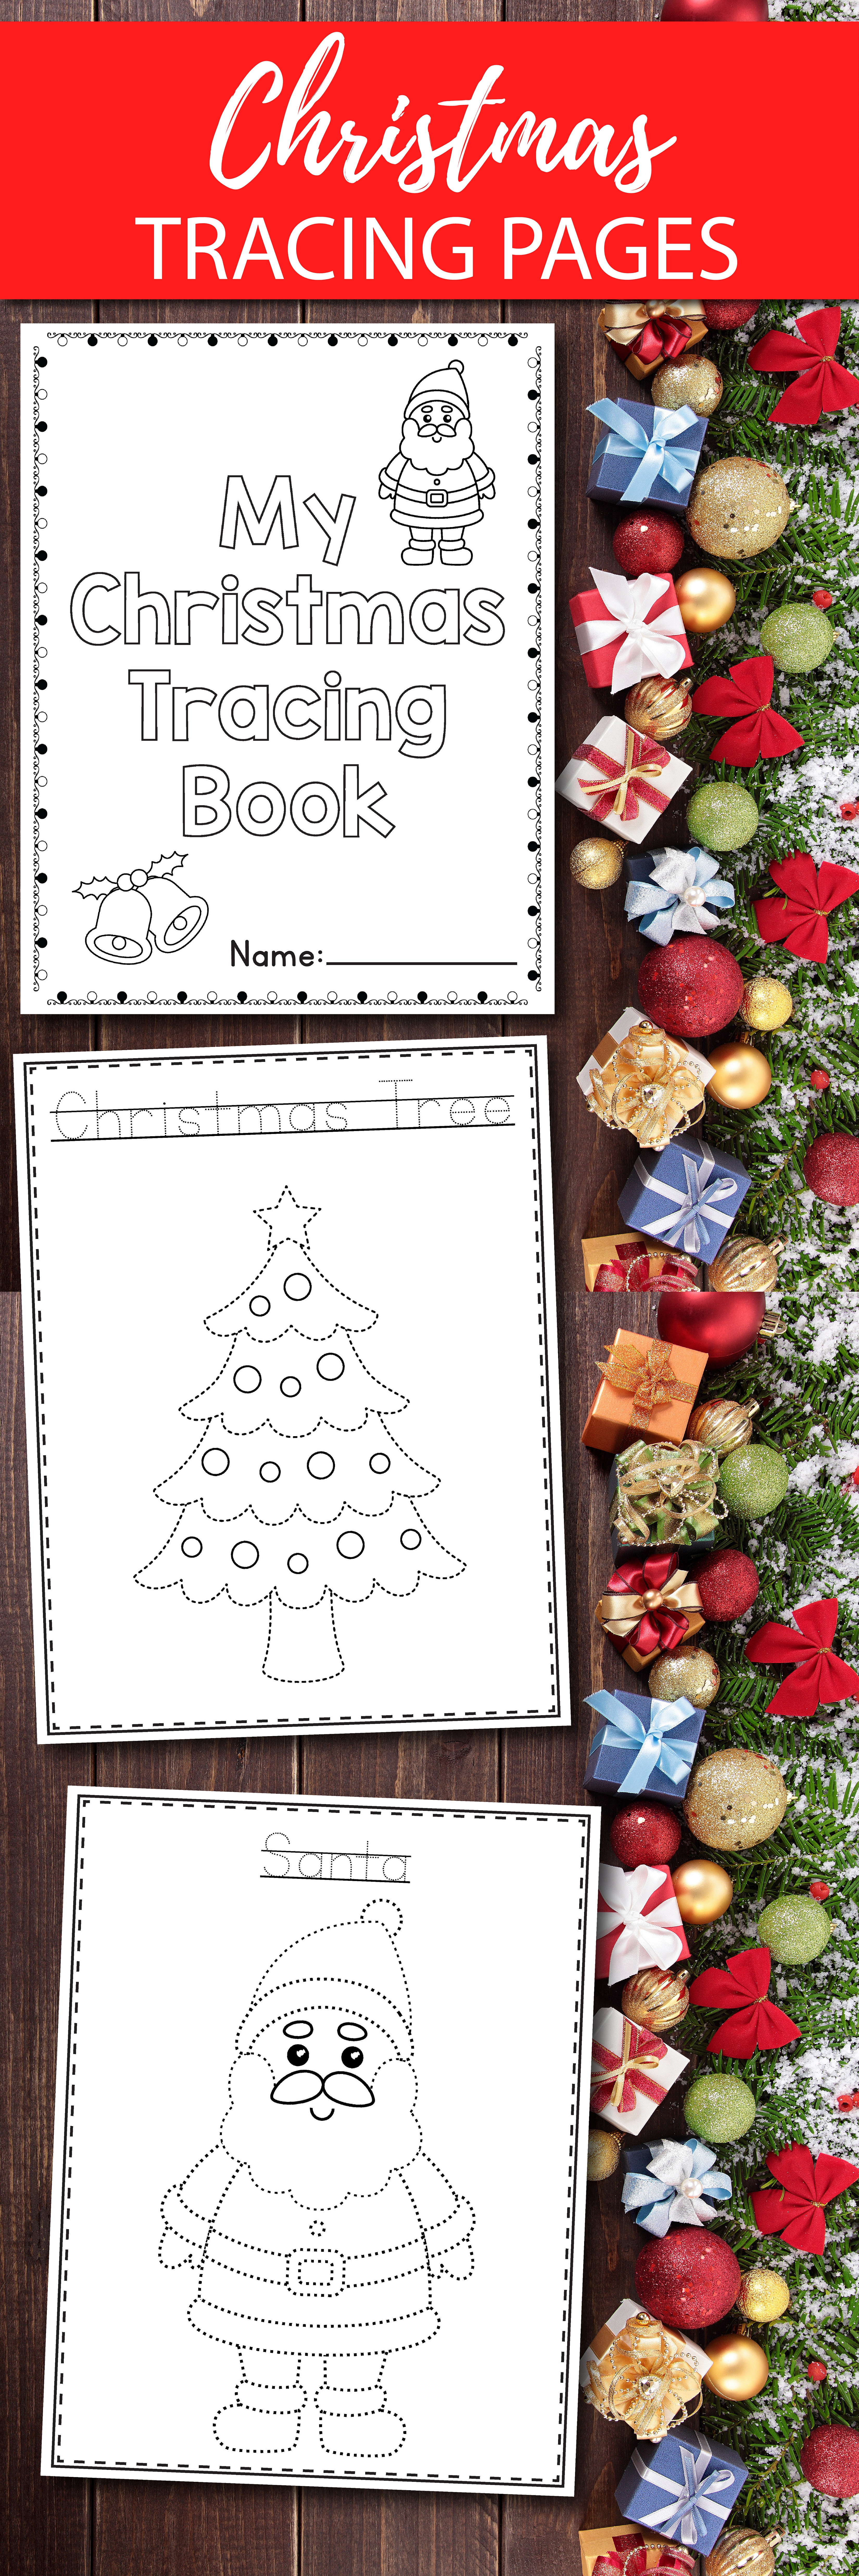 Christmas Tracing For Preschool